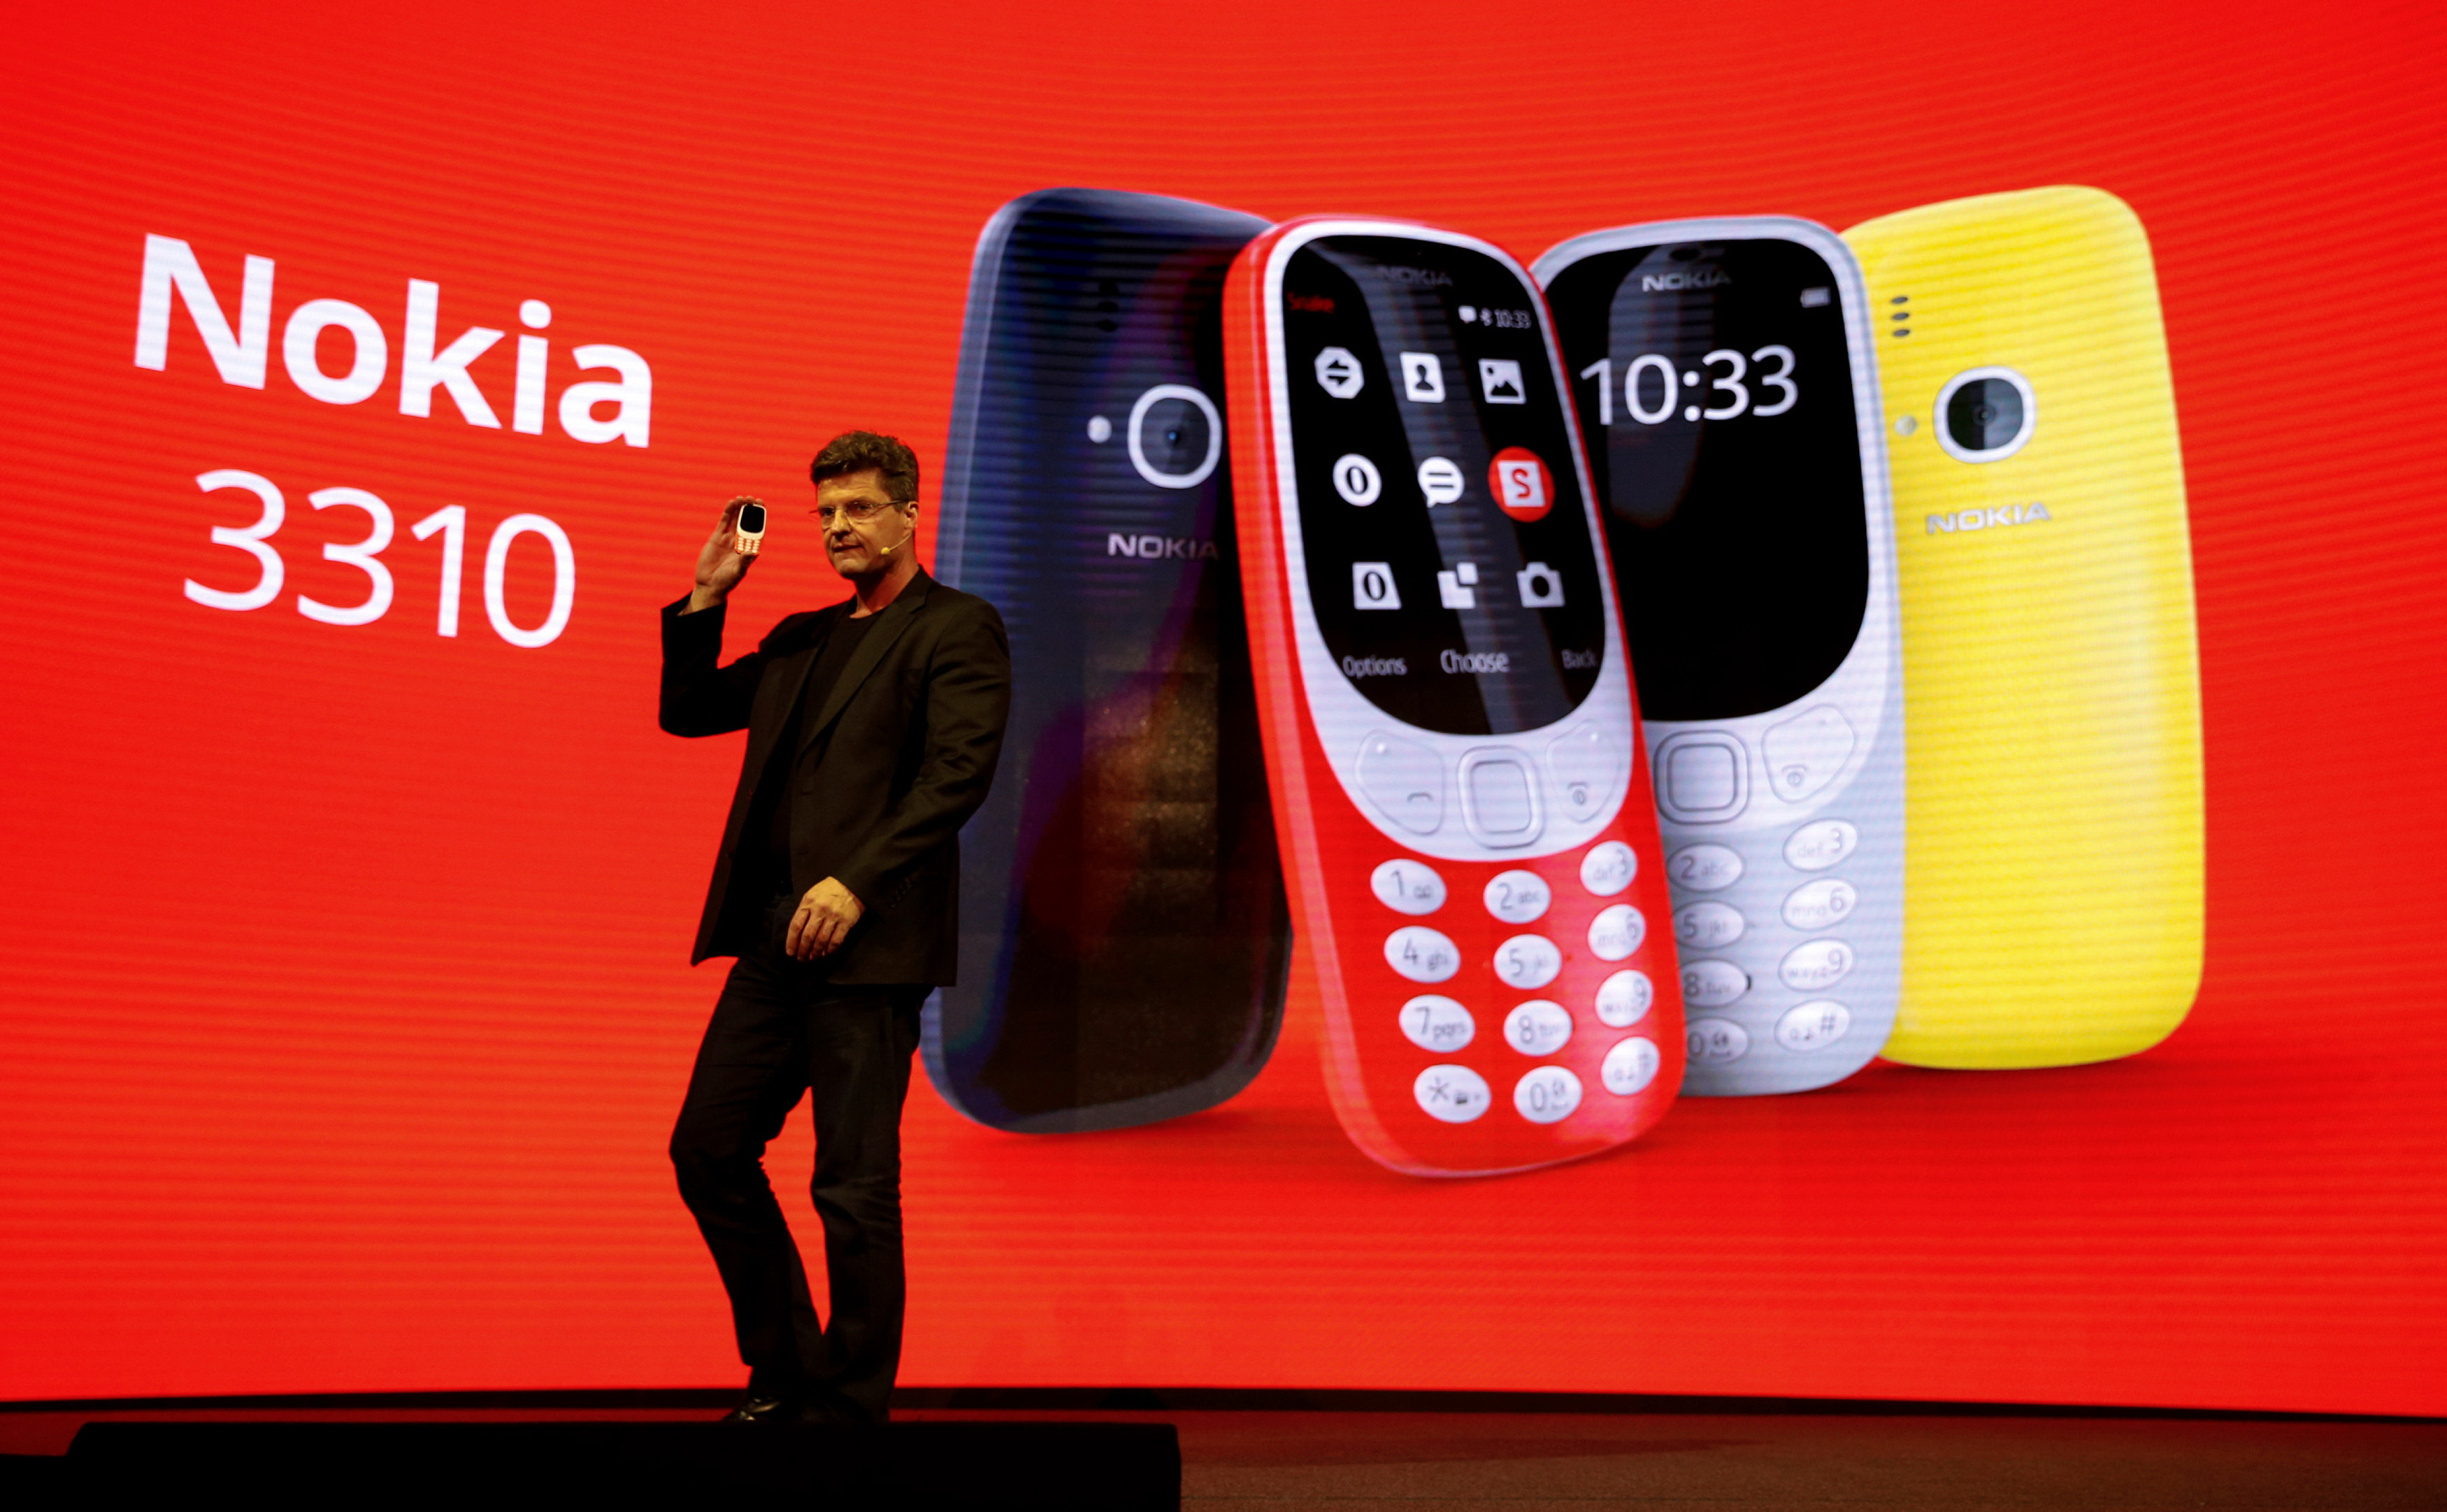 Nokia goes back to the future with 49 euro phone